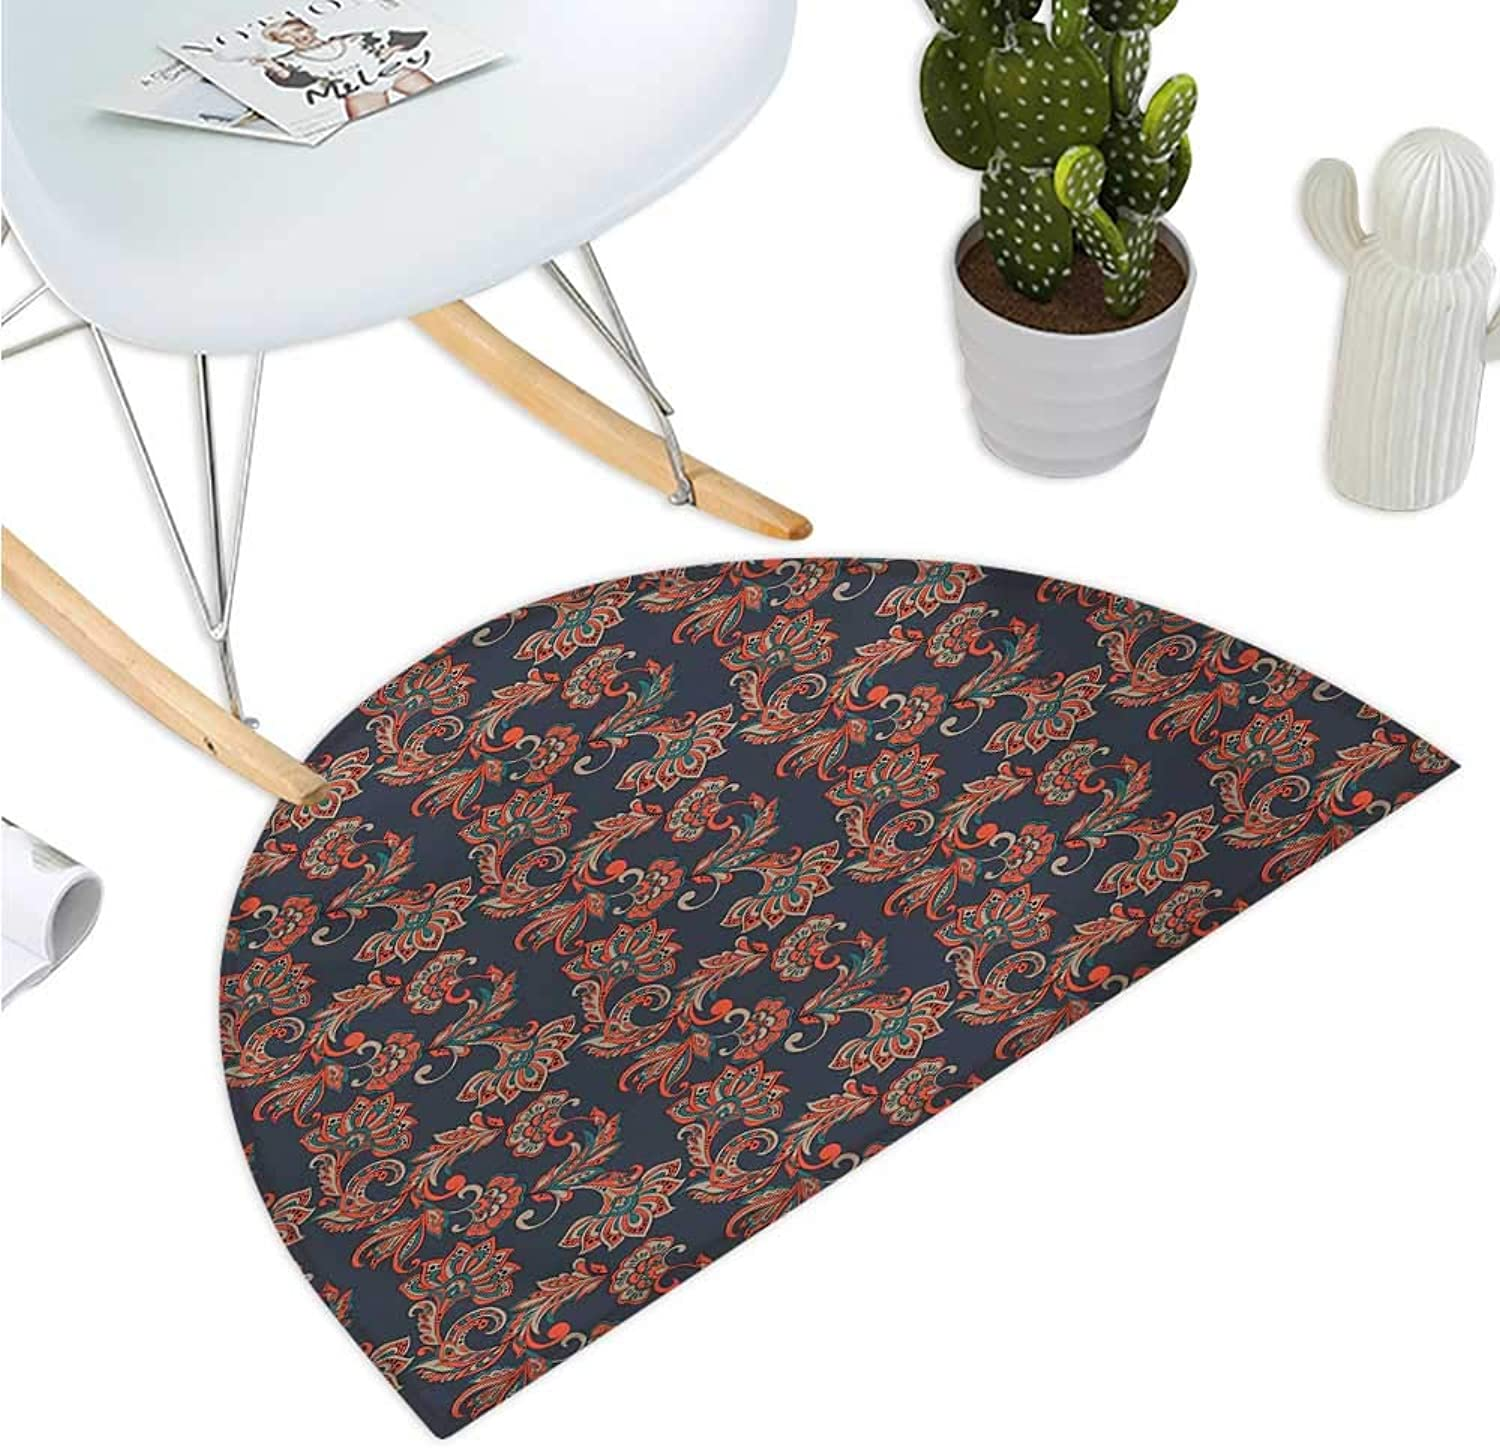 Ethnic Semicircular Cushion Ethnic Oriental Image with Floral Swirls and Leaves Artwork Image Bathroom Mat H 35.4  xD 53.1  Dark bluee Grey and Vermilion